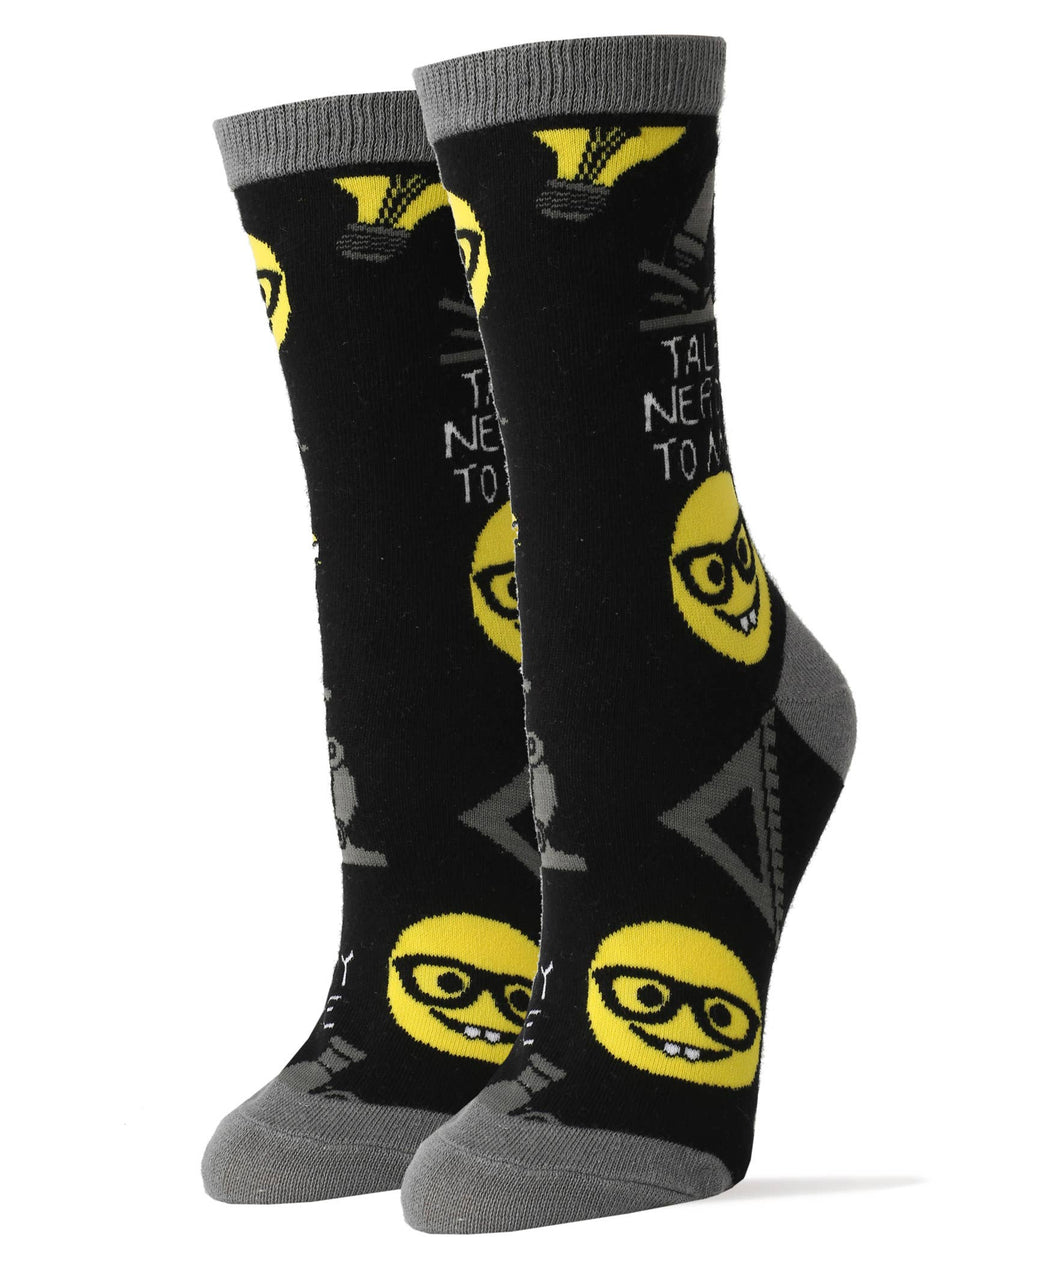 Talk Nerdy To Me - Women's Socks